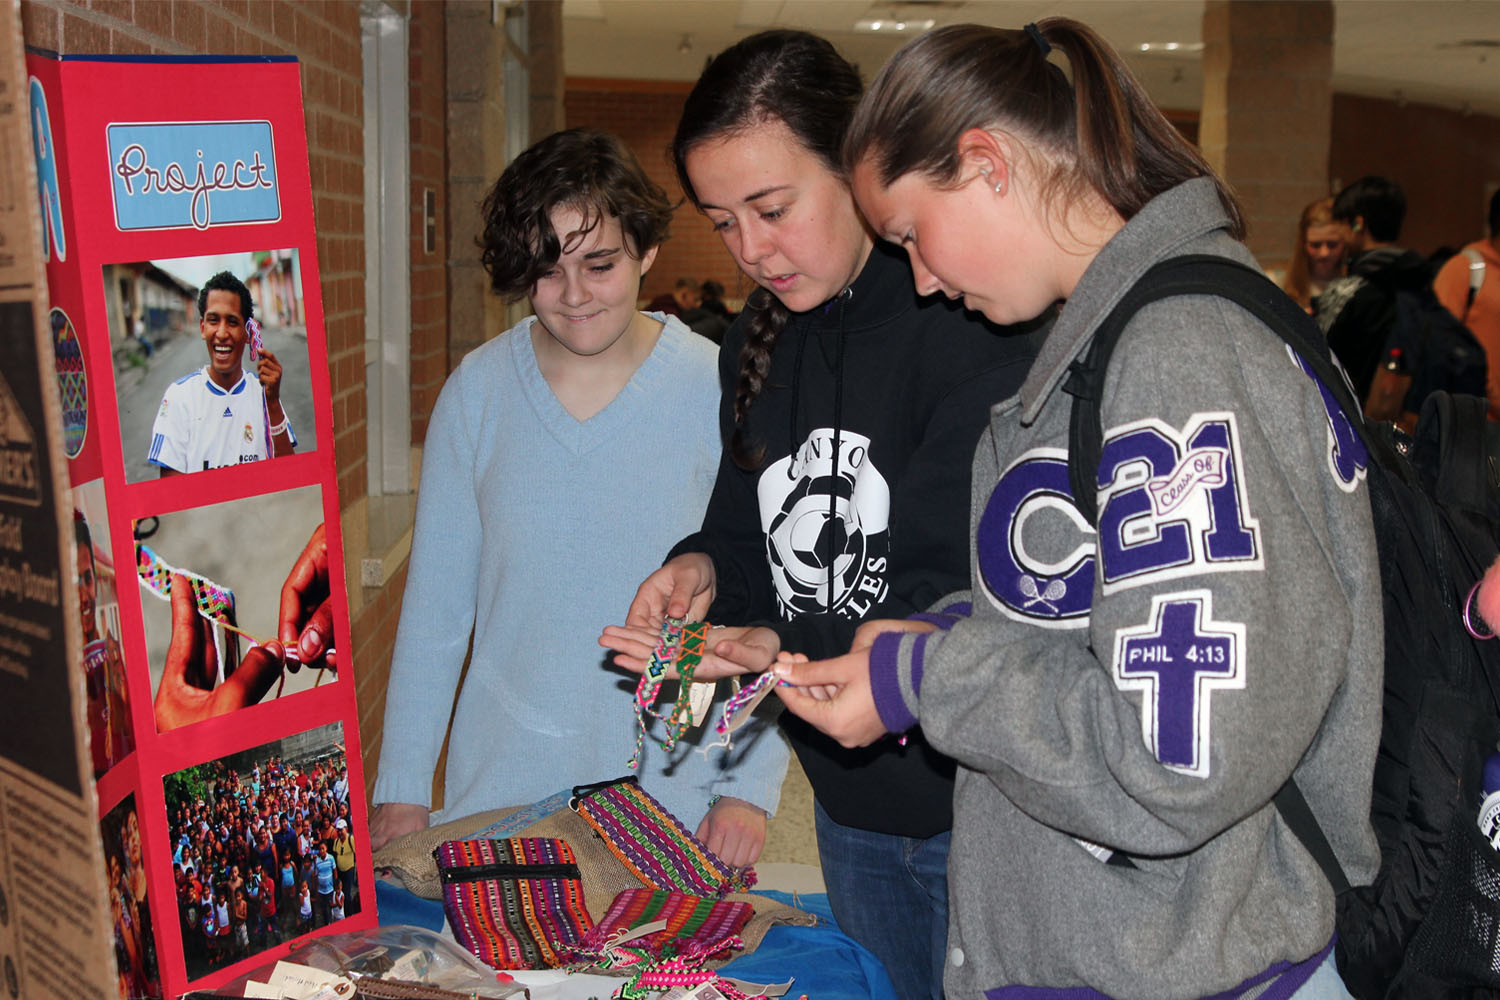 Spanish club members Emily Winters and Carly Behrens show Kelsey Braudt some of the pulseras available for purchase at the Spanish Club's booth during lunch.